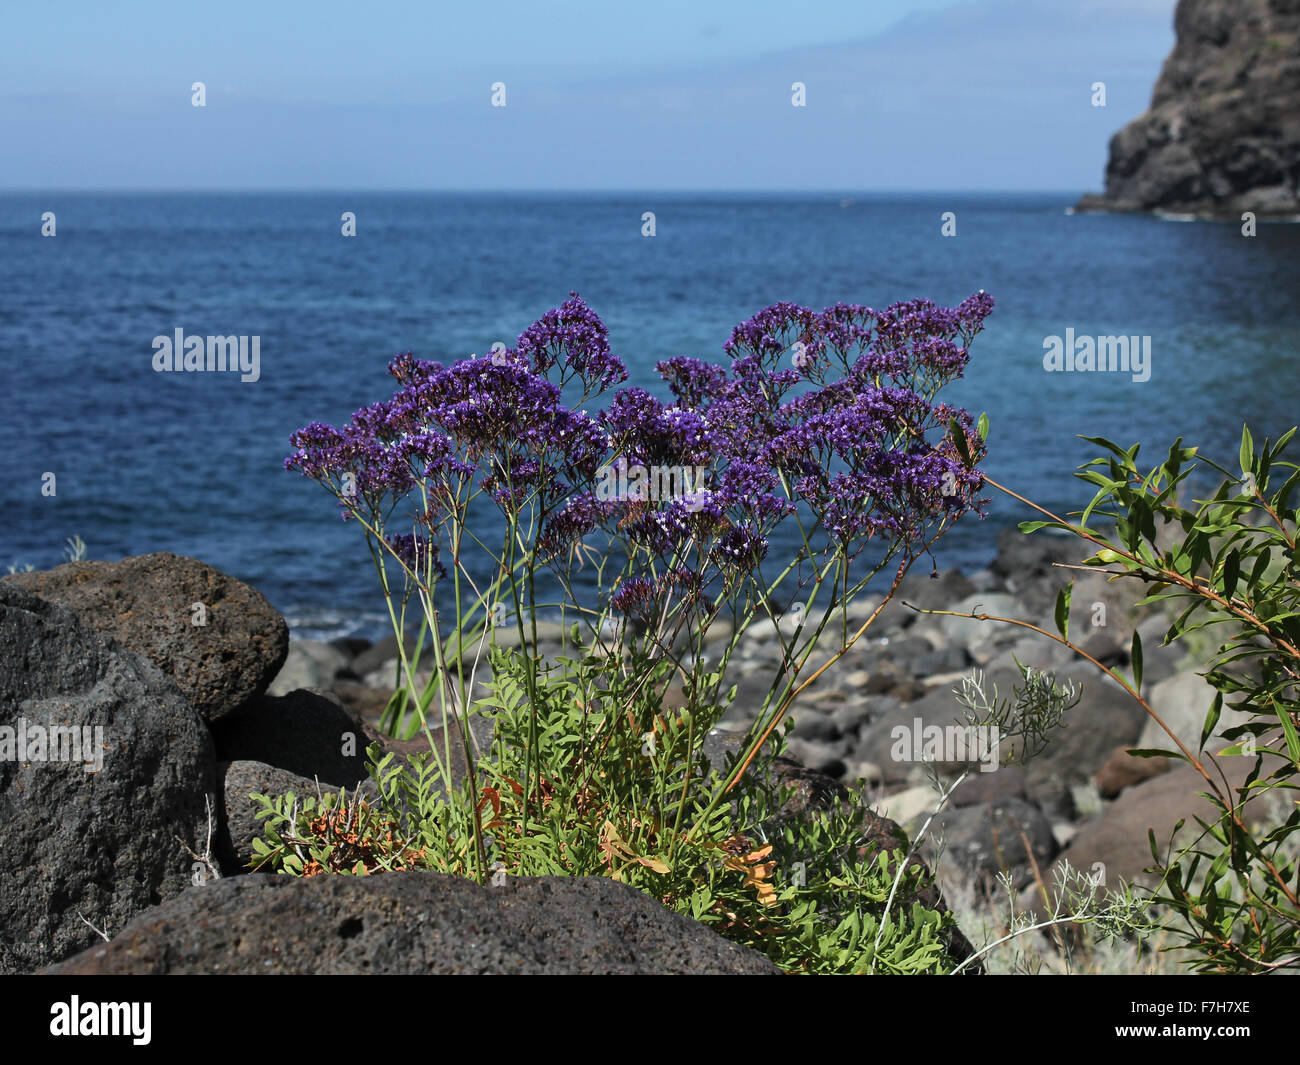 Flowering plant of Limonium spectabile - Stock Image